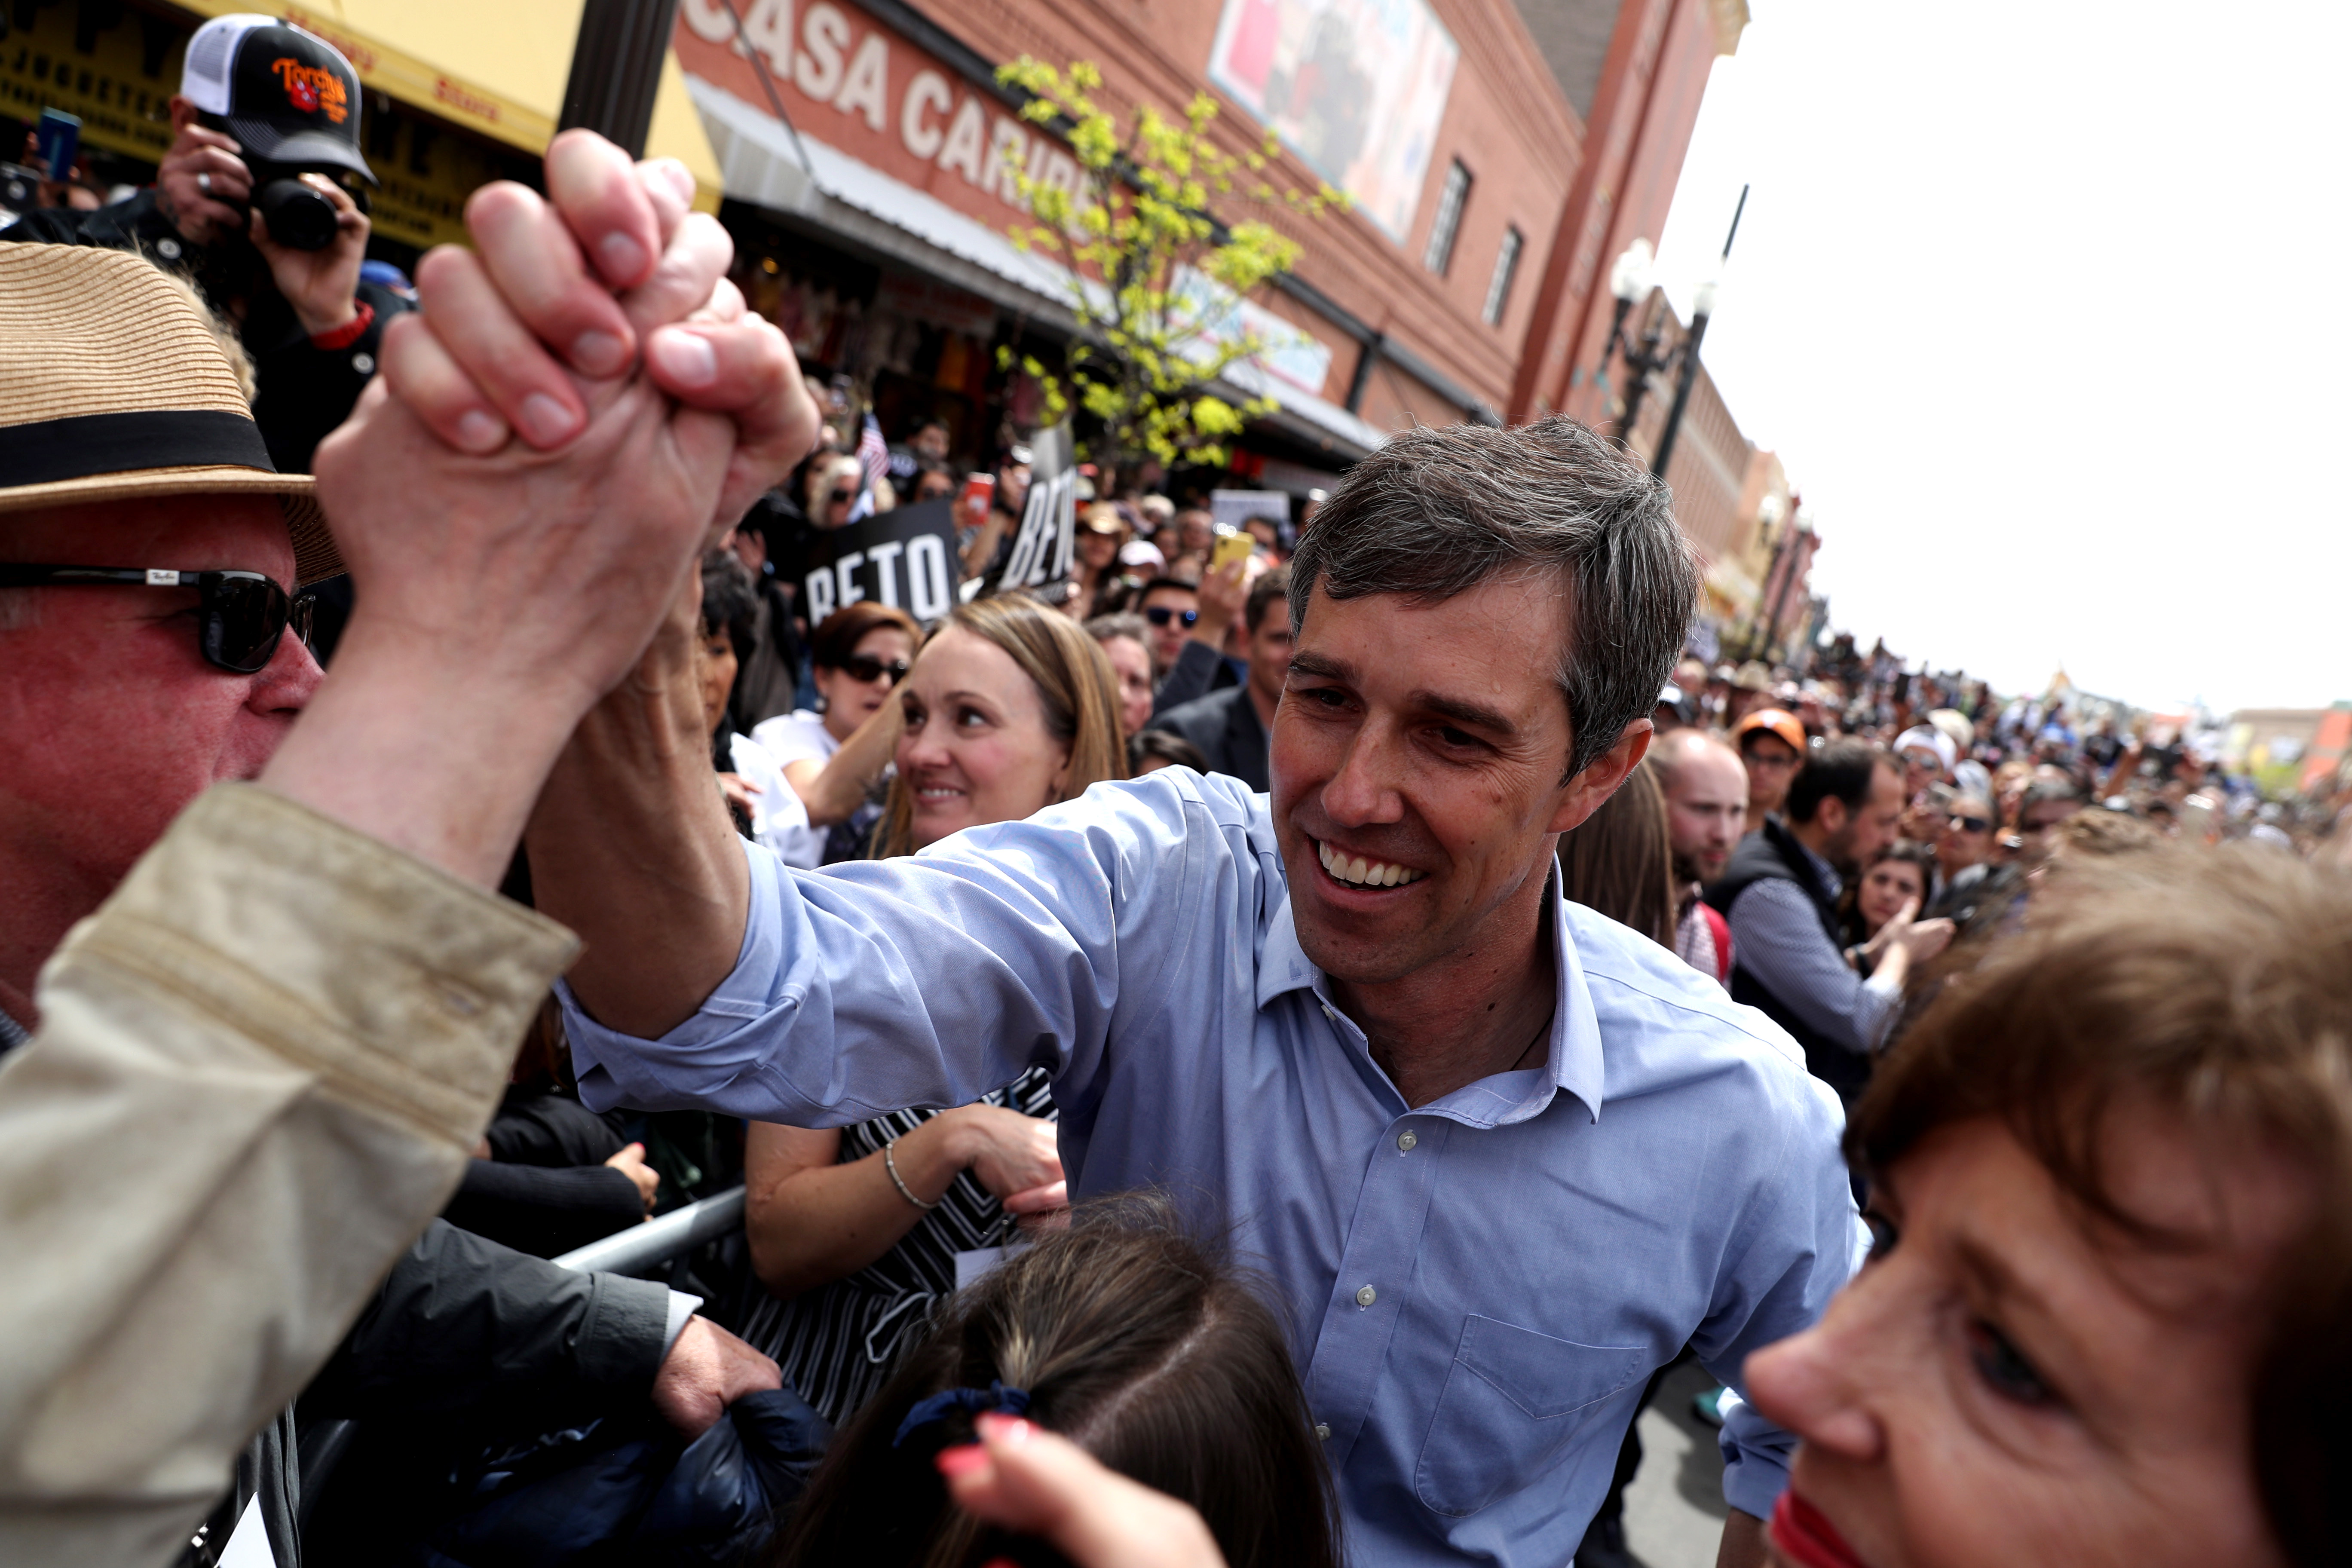 Beto O'Rourke Holds Official Campaign Launch Rally In His Hometown Of El Paso